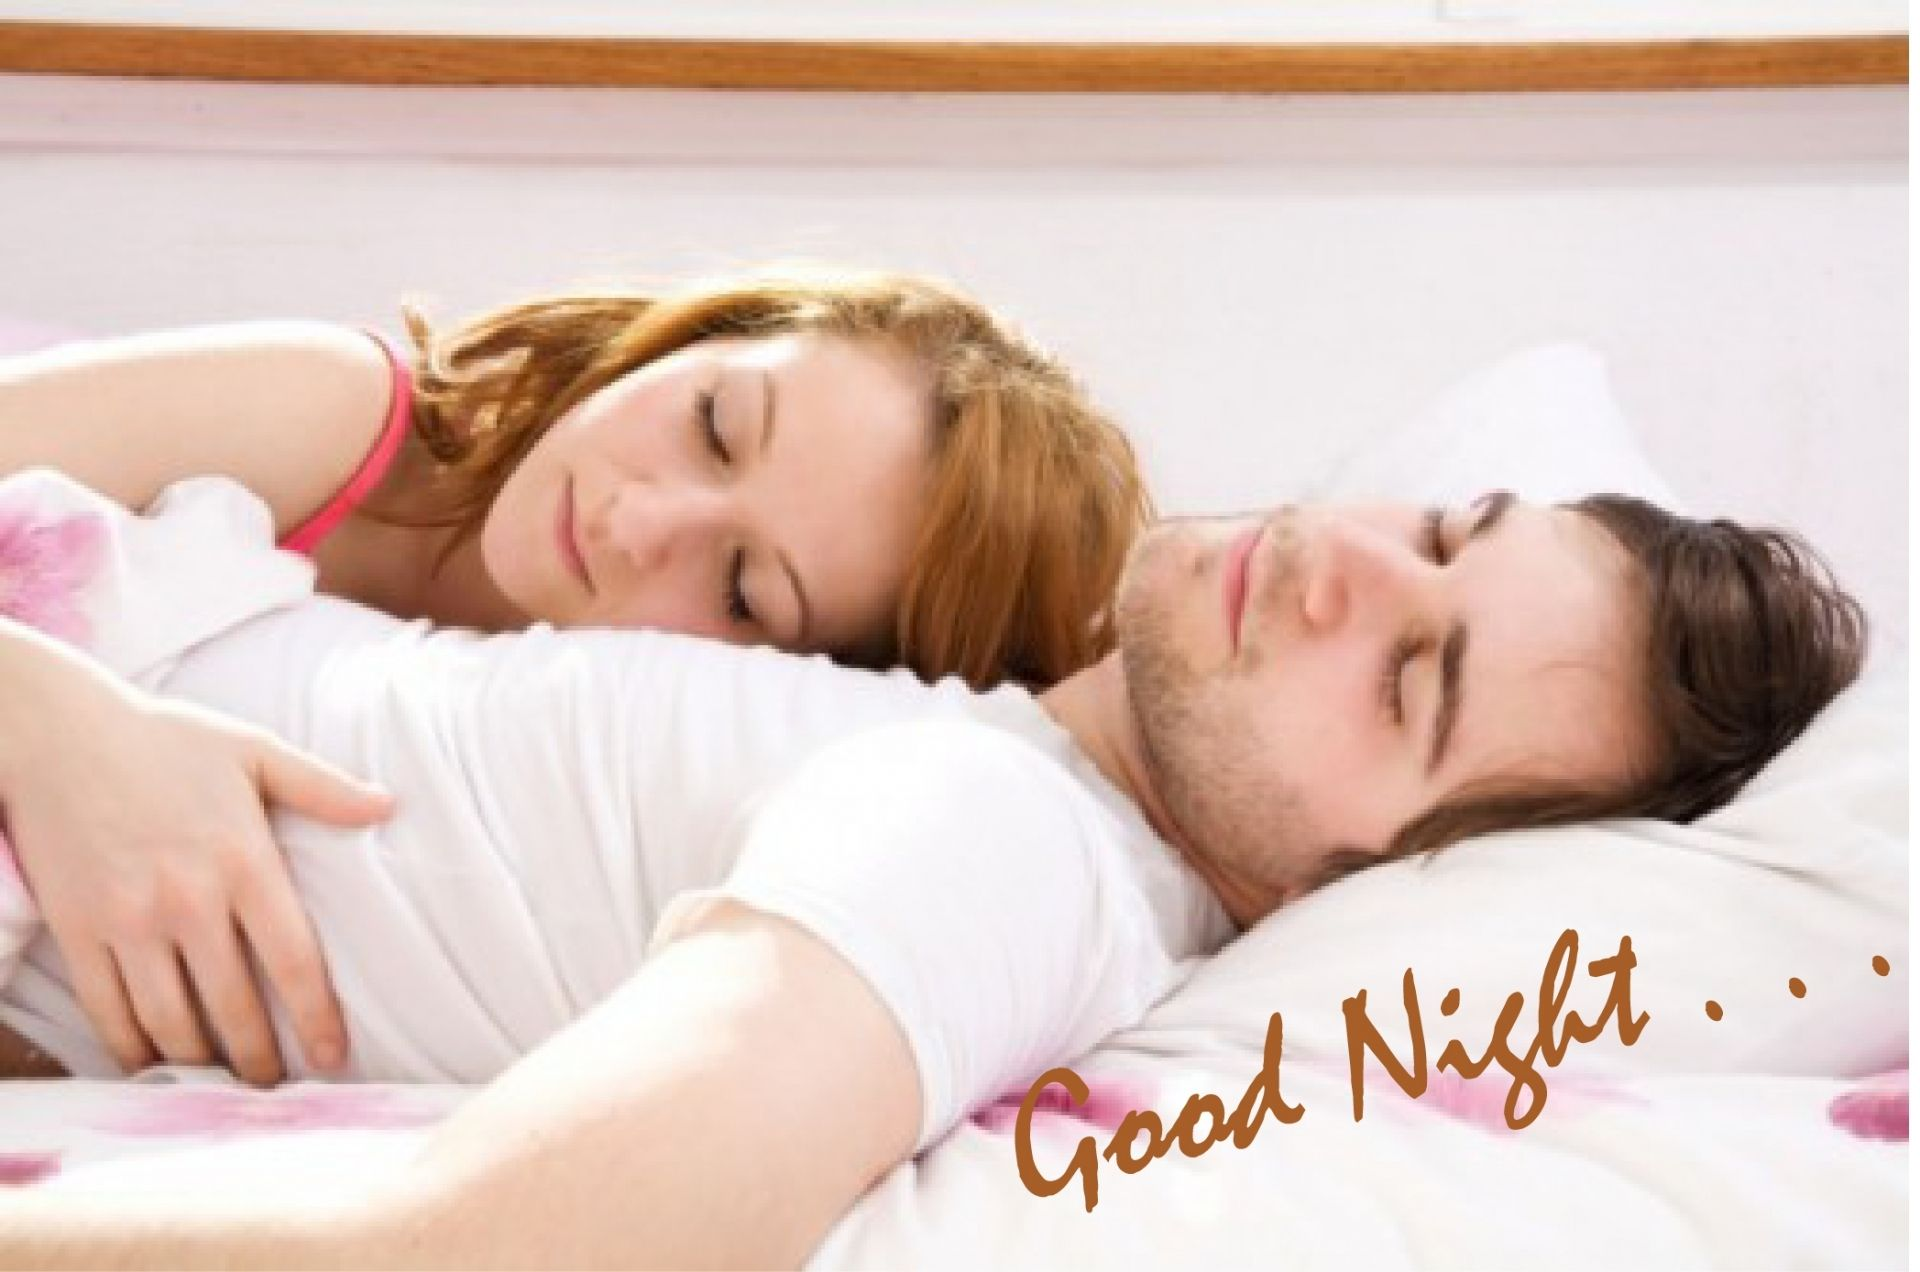 Good Night Images With Romantic Couple Wallpapers Hd For Mobile Free